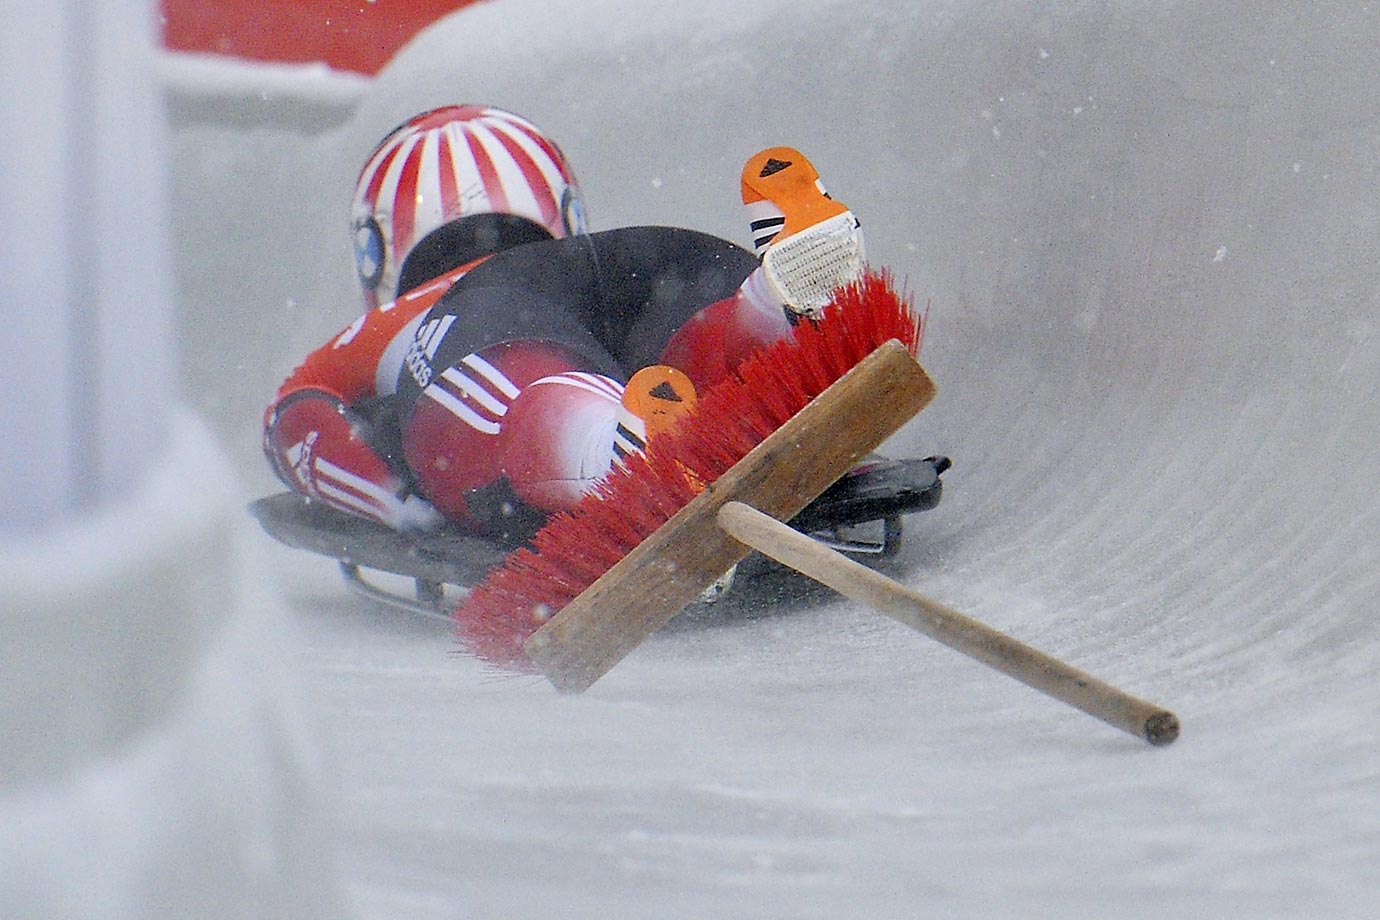 Lanette Prediger runs into a broom during her first run in the Skeleton World Cup race in Igls, near Innsbruck, Austria.